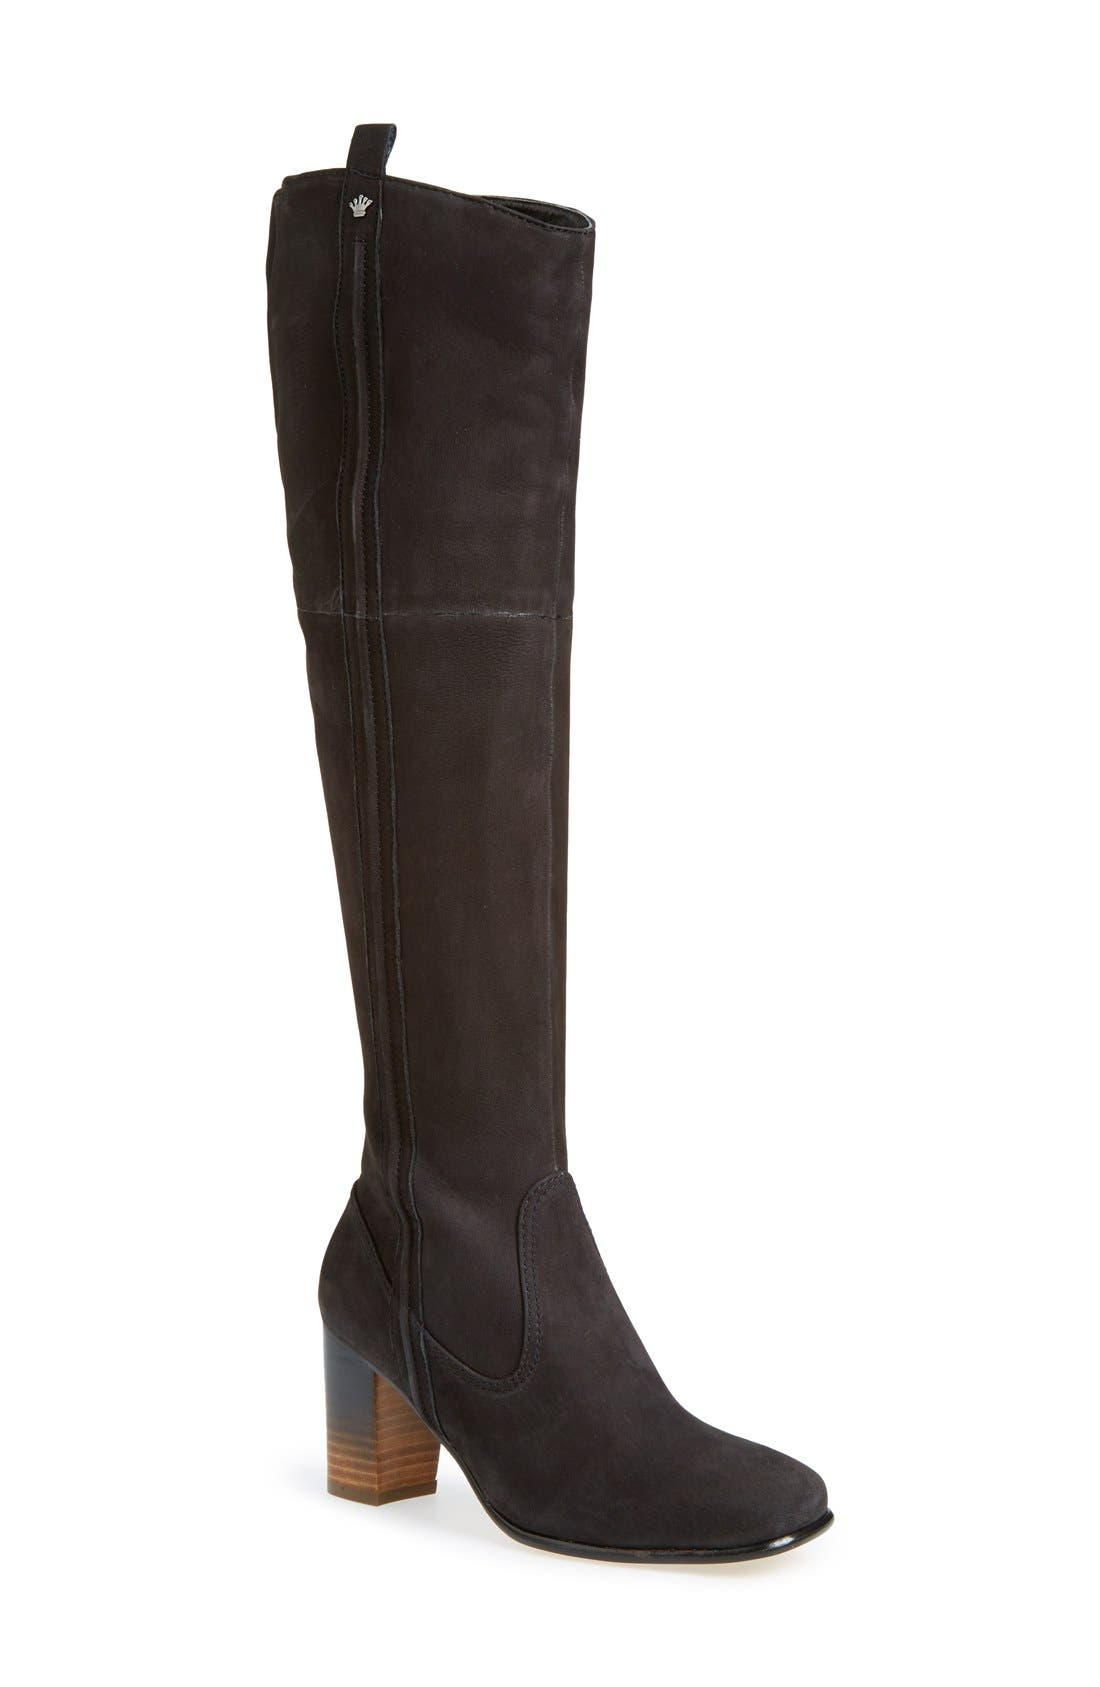 'Ventura' Over the Knee Boot, Main, color, 001